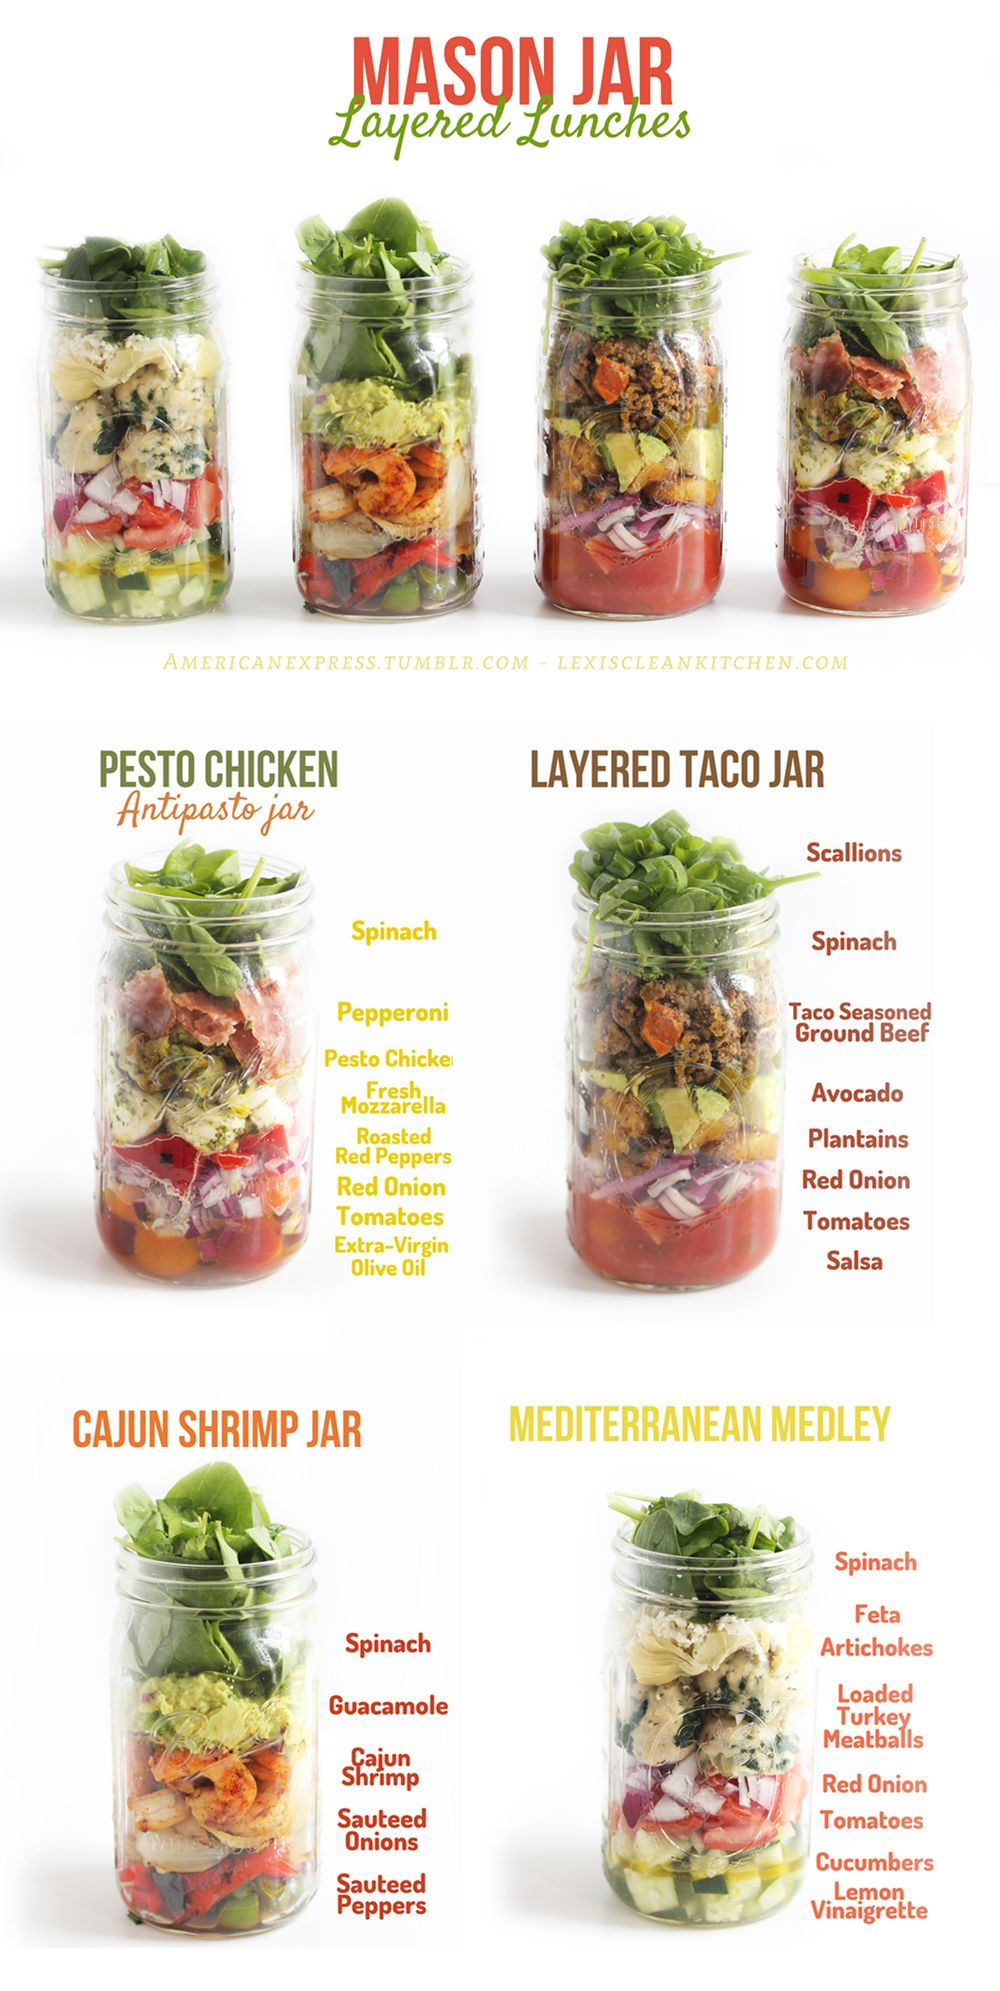 Mason Jar Layered Lunches - Lexi's Clean Kitchen S